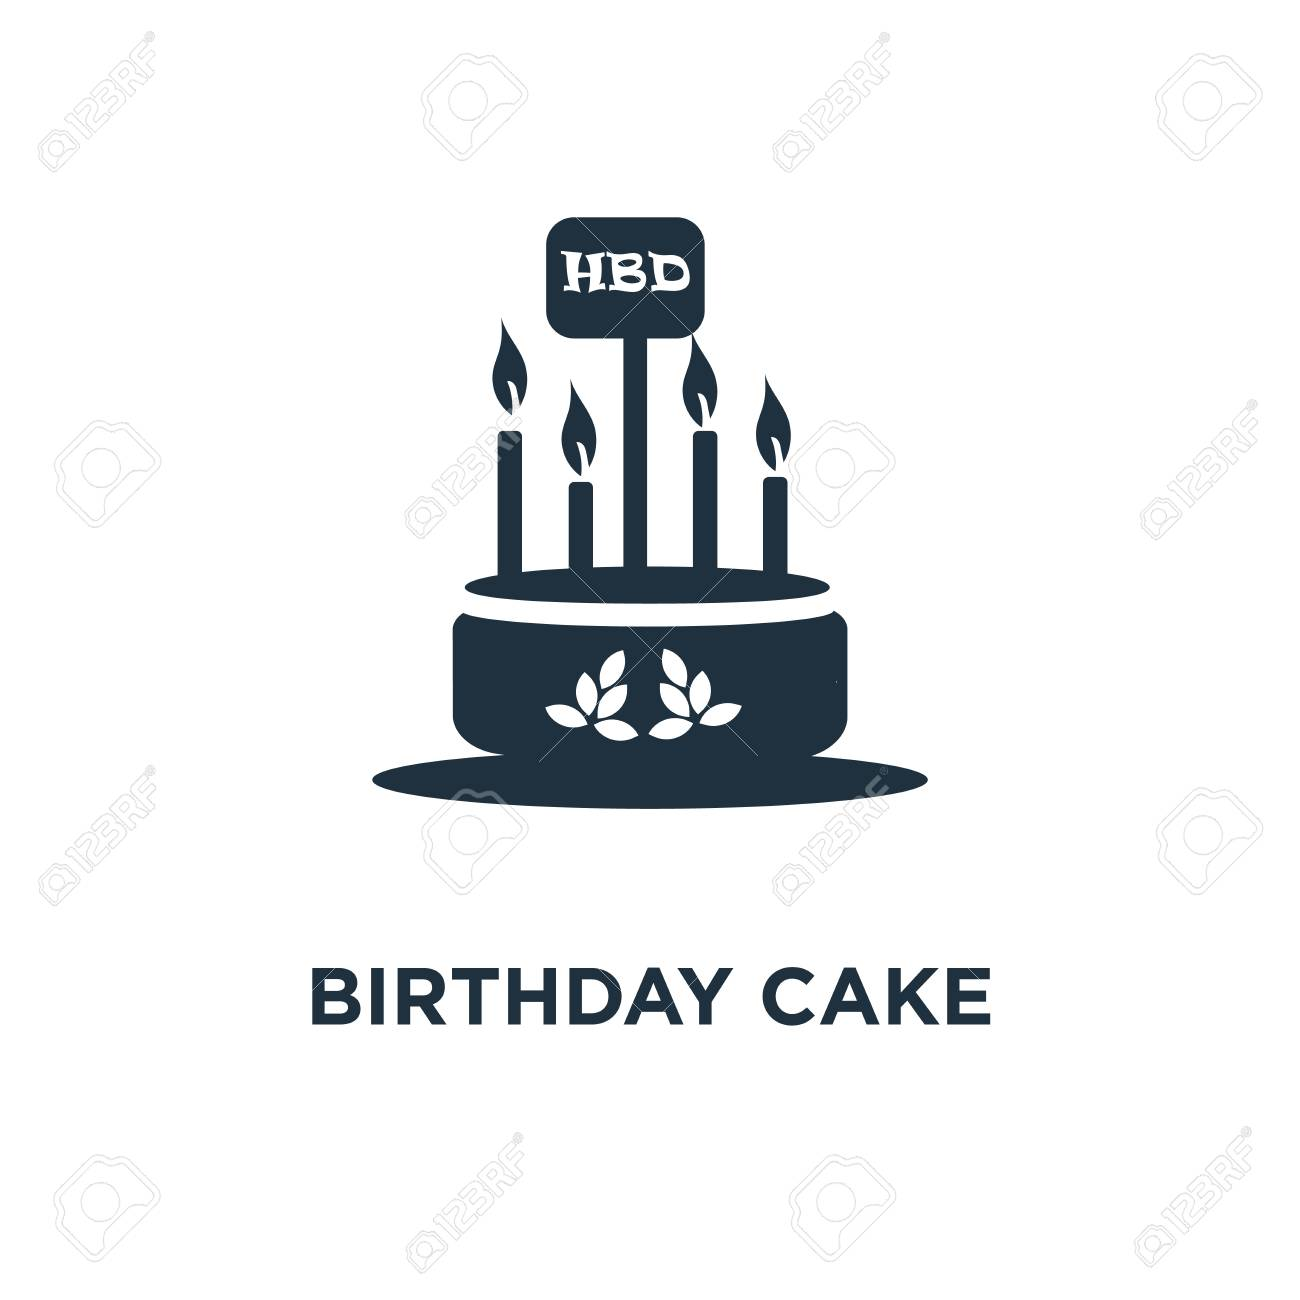 Birthday Cake Icon Black Filled Vector Illustration Symbol On White Background